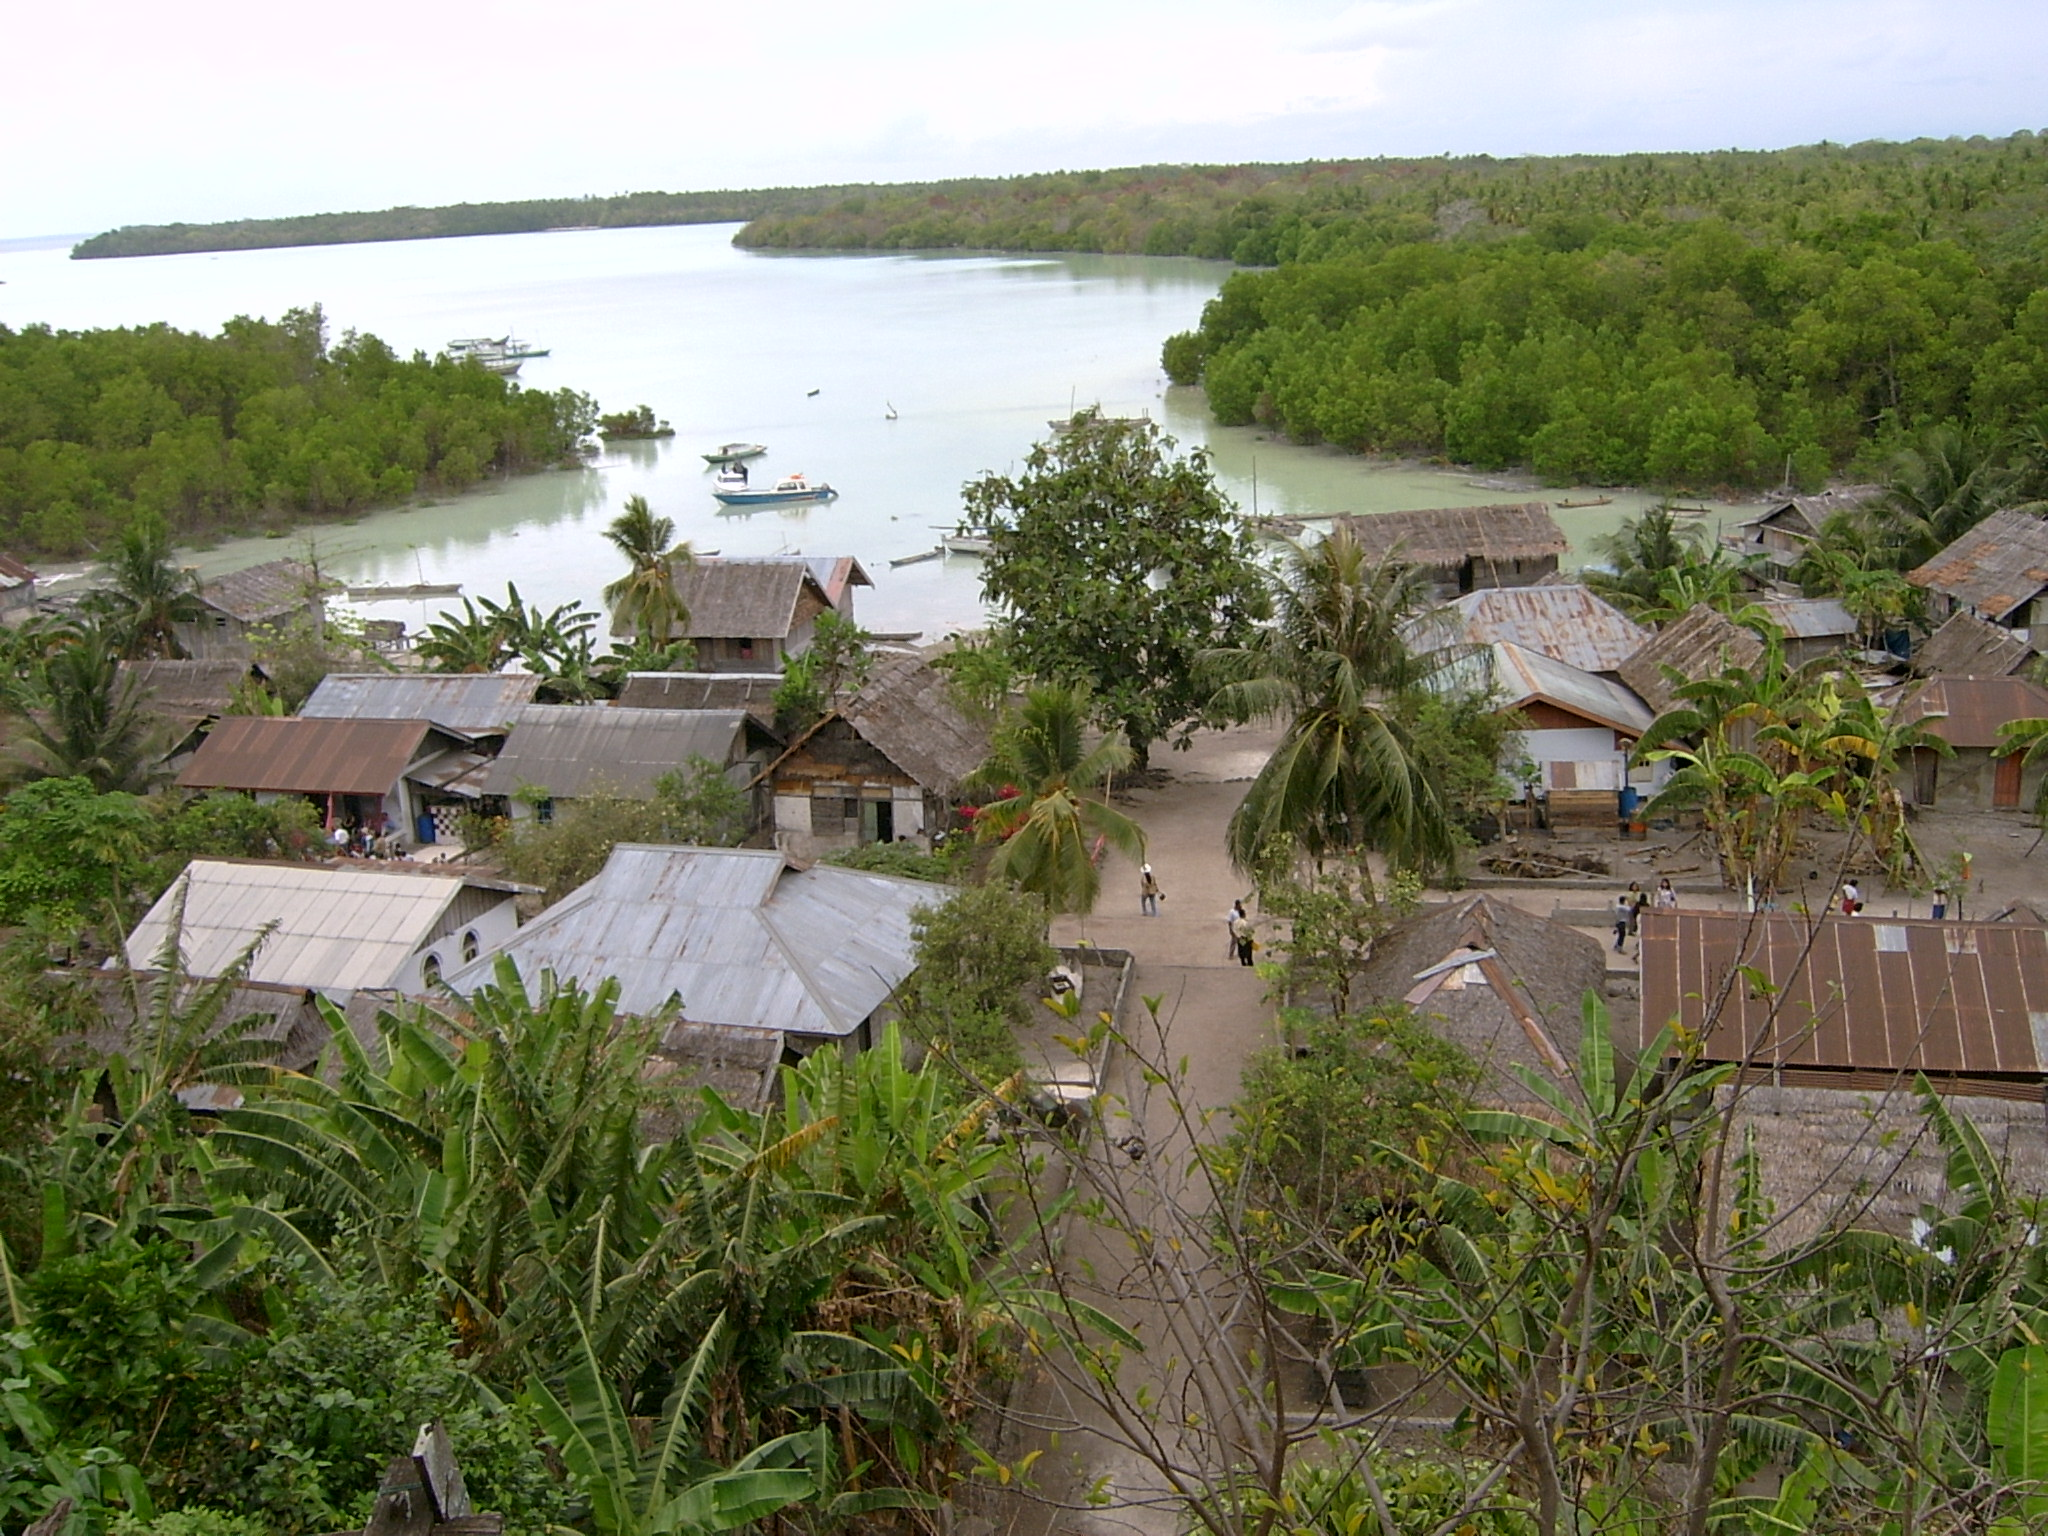 tanimbar culture village in kei islands